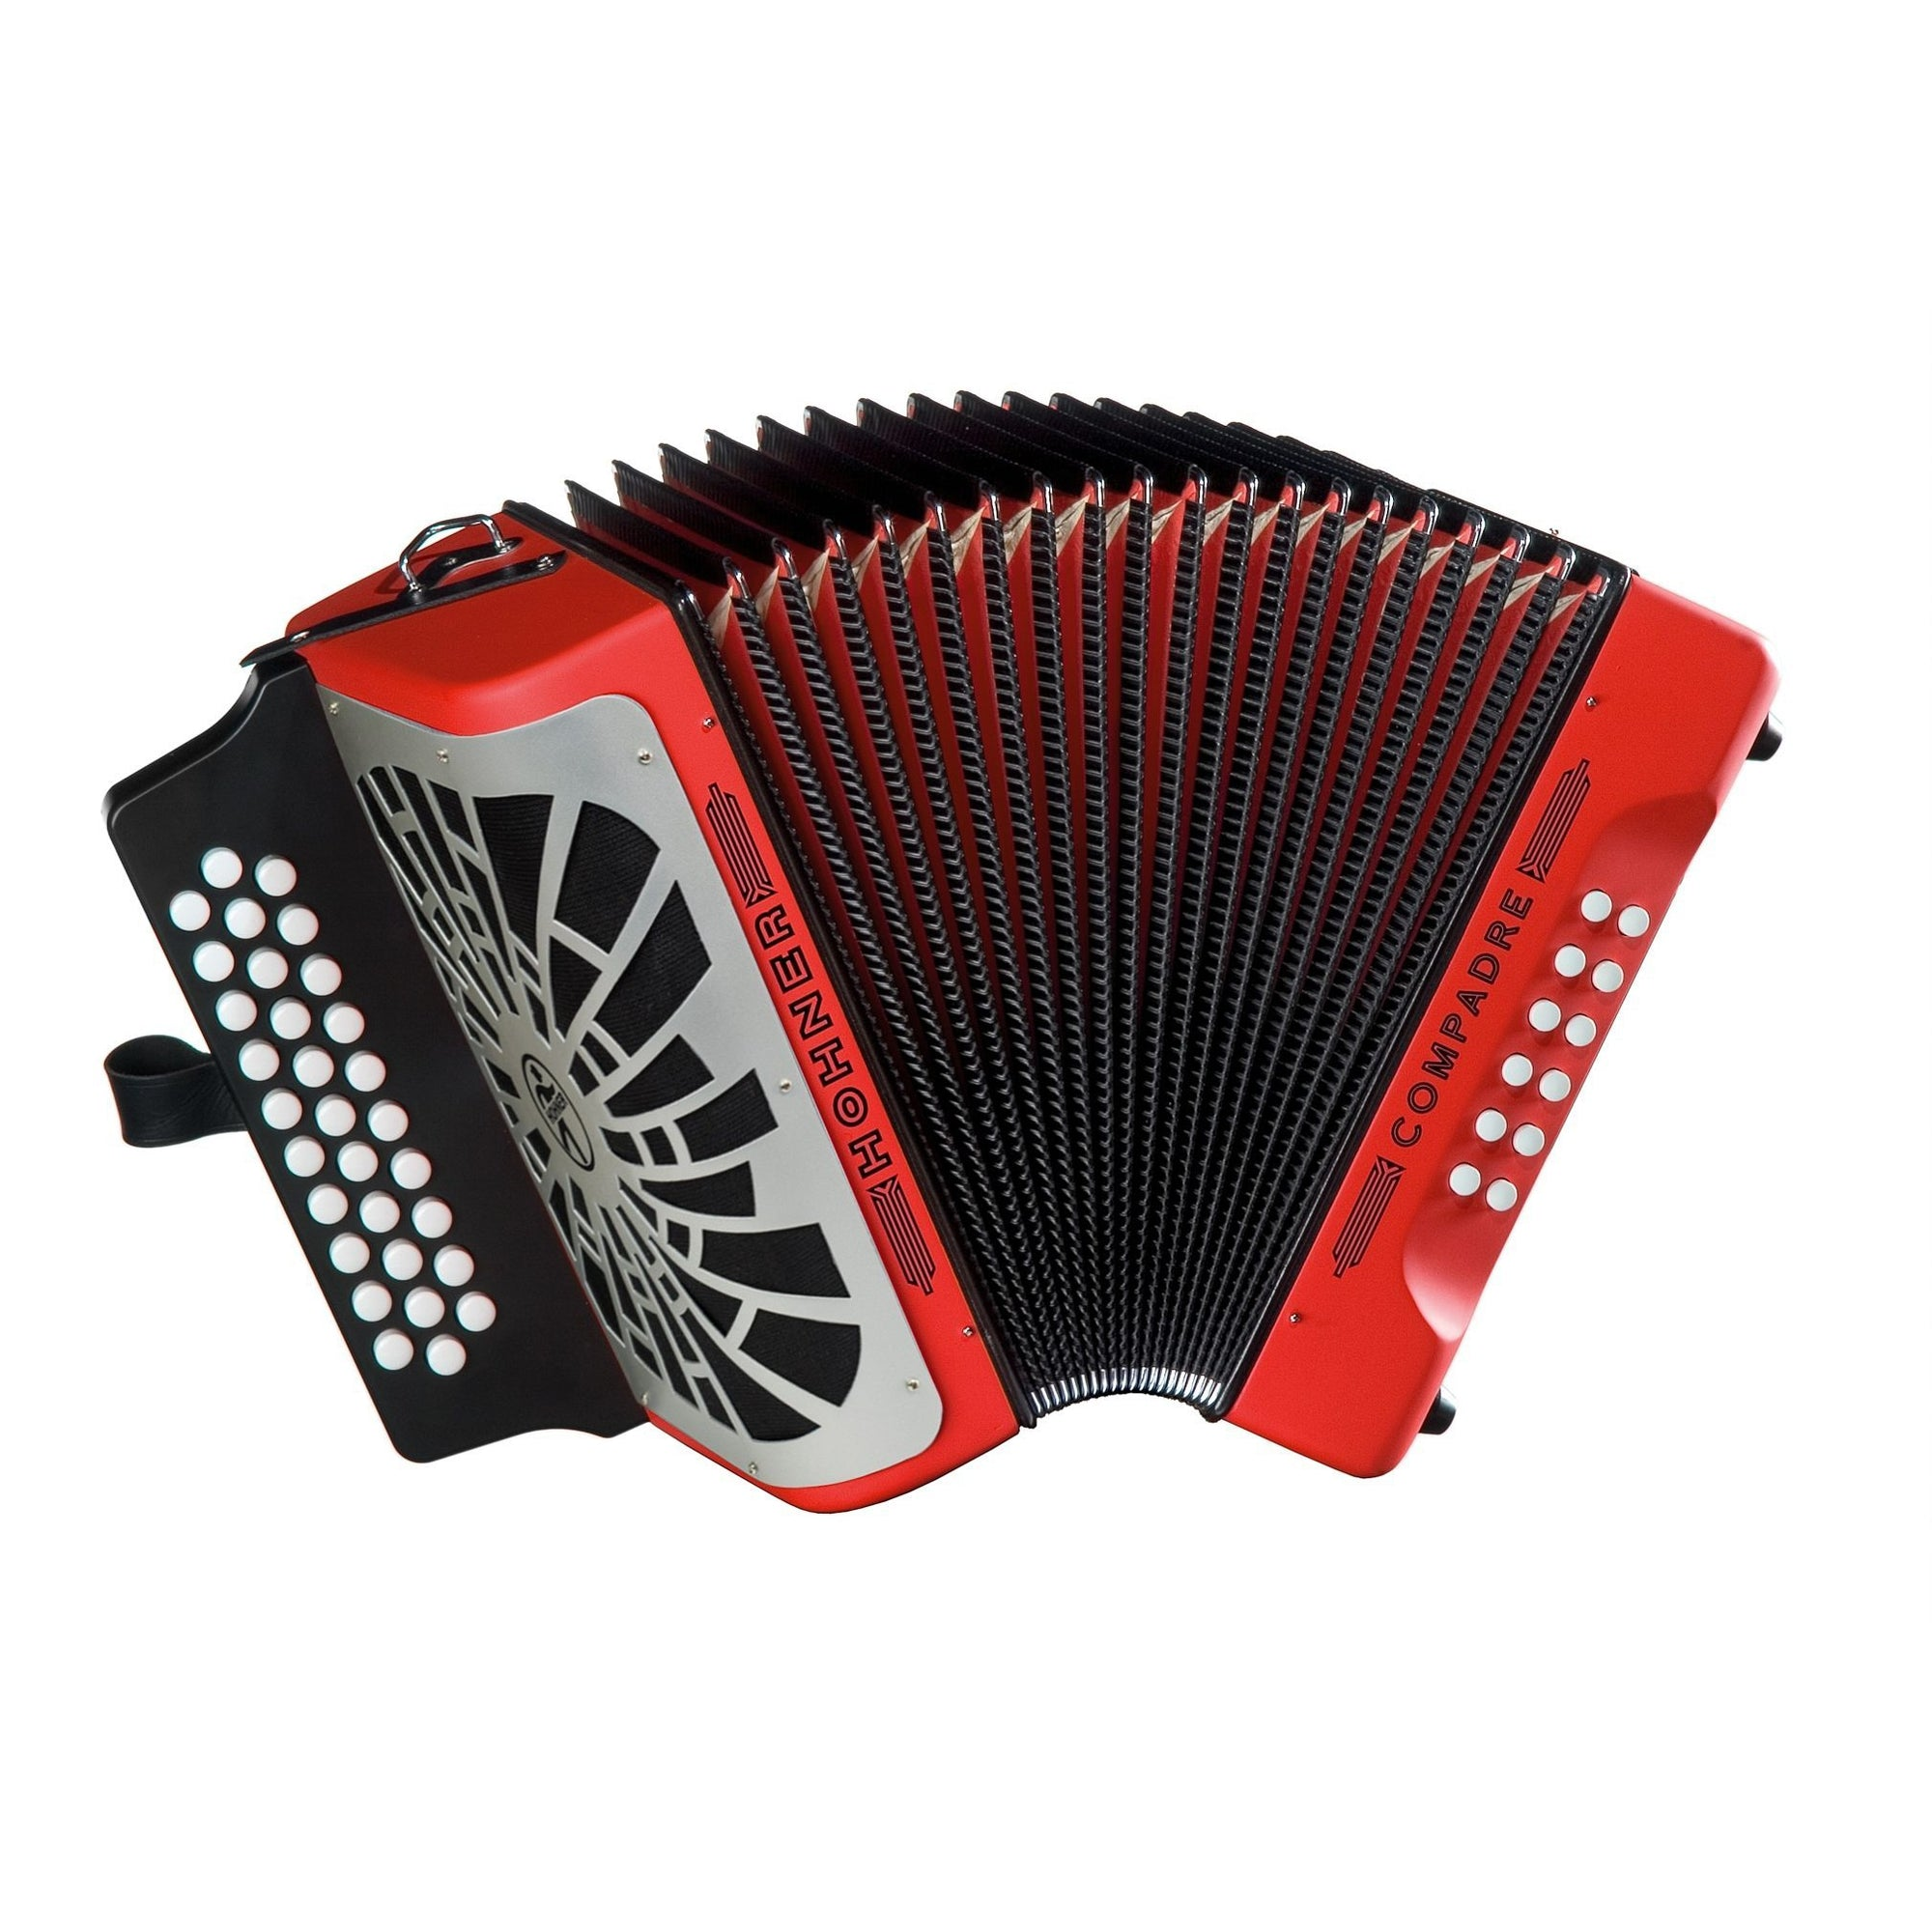 Hohner Compadre Accordion (with Gig Bag), Red, G/C/F, with Gig Bag